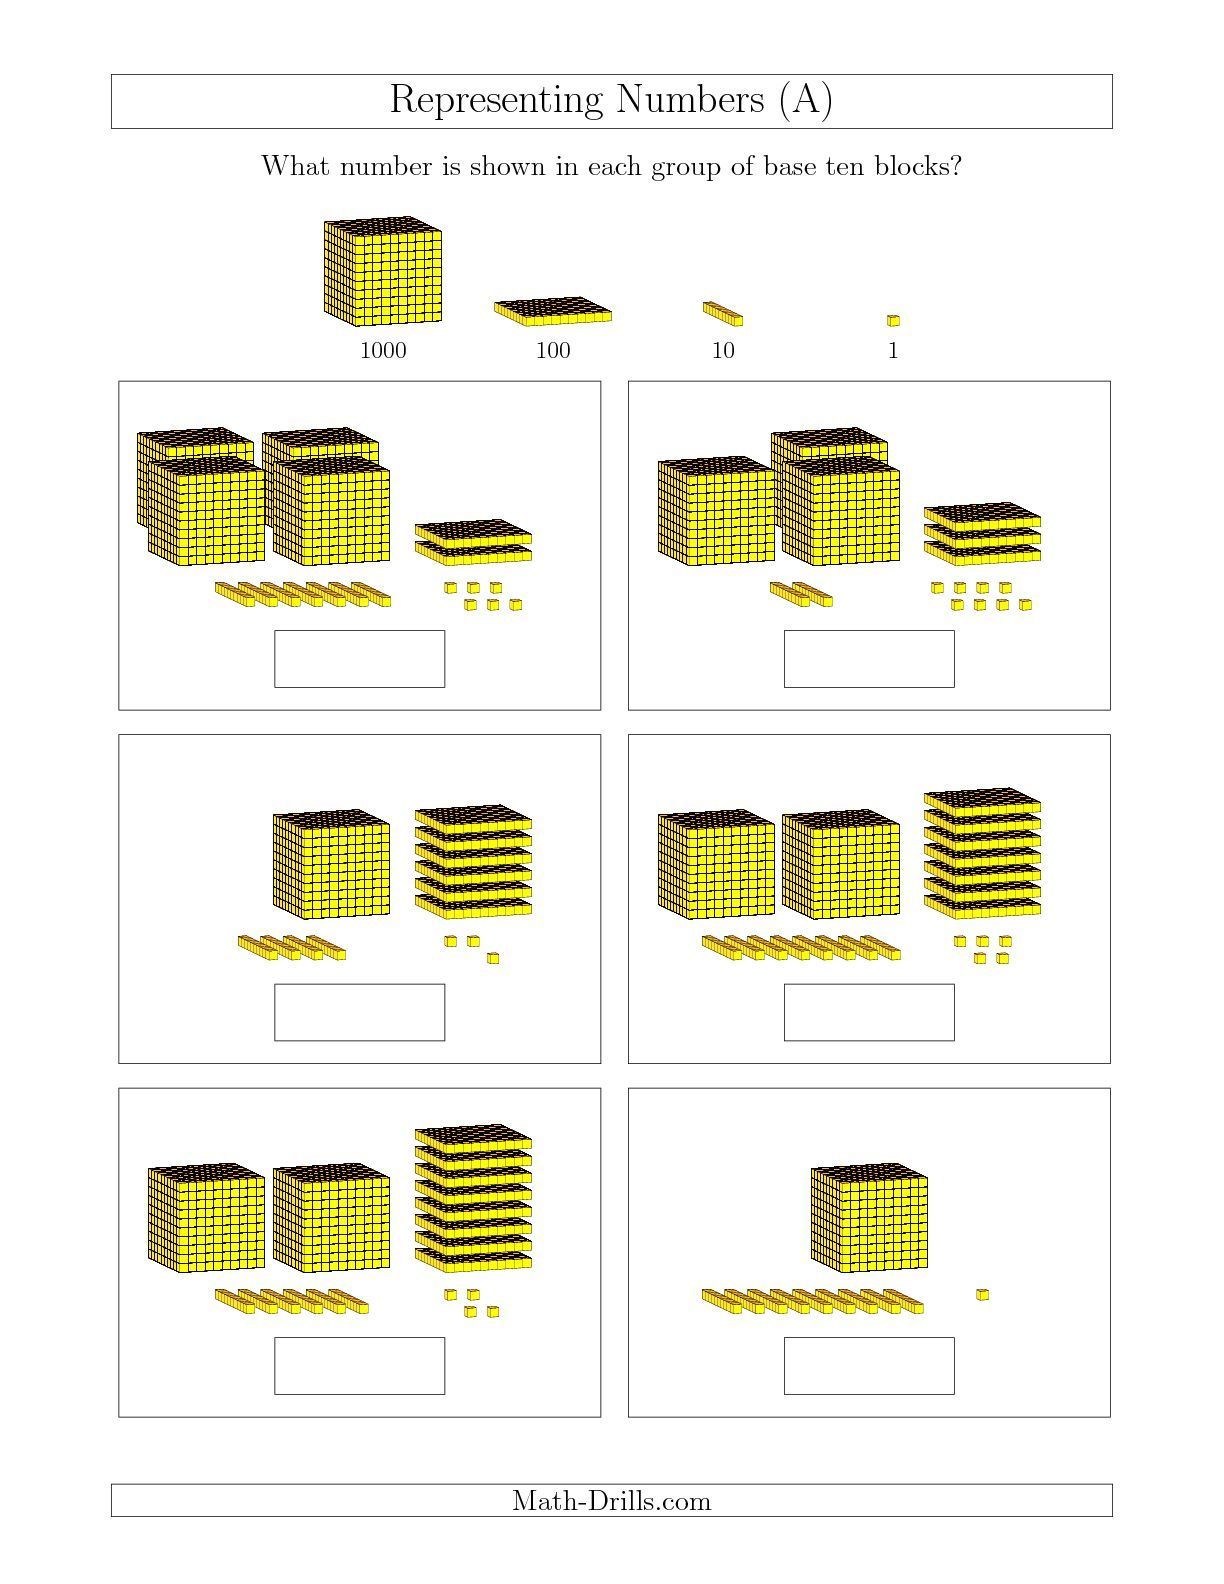 small resolution of The Representing Numbers to 4999 with Base Ten Blocks (A) math worksheet  from the Base Ten Blocks Worksheet page at Math-D…   Base ten blocks